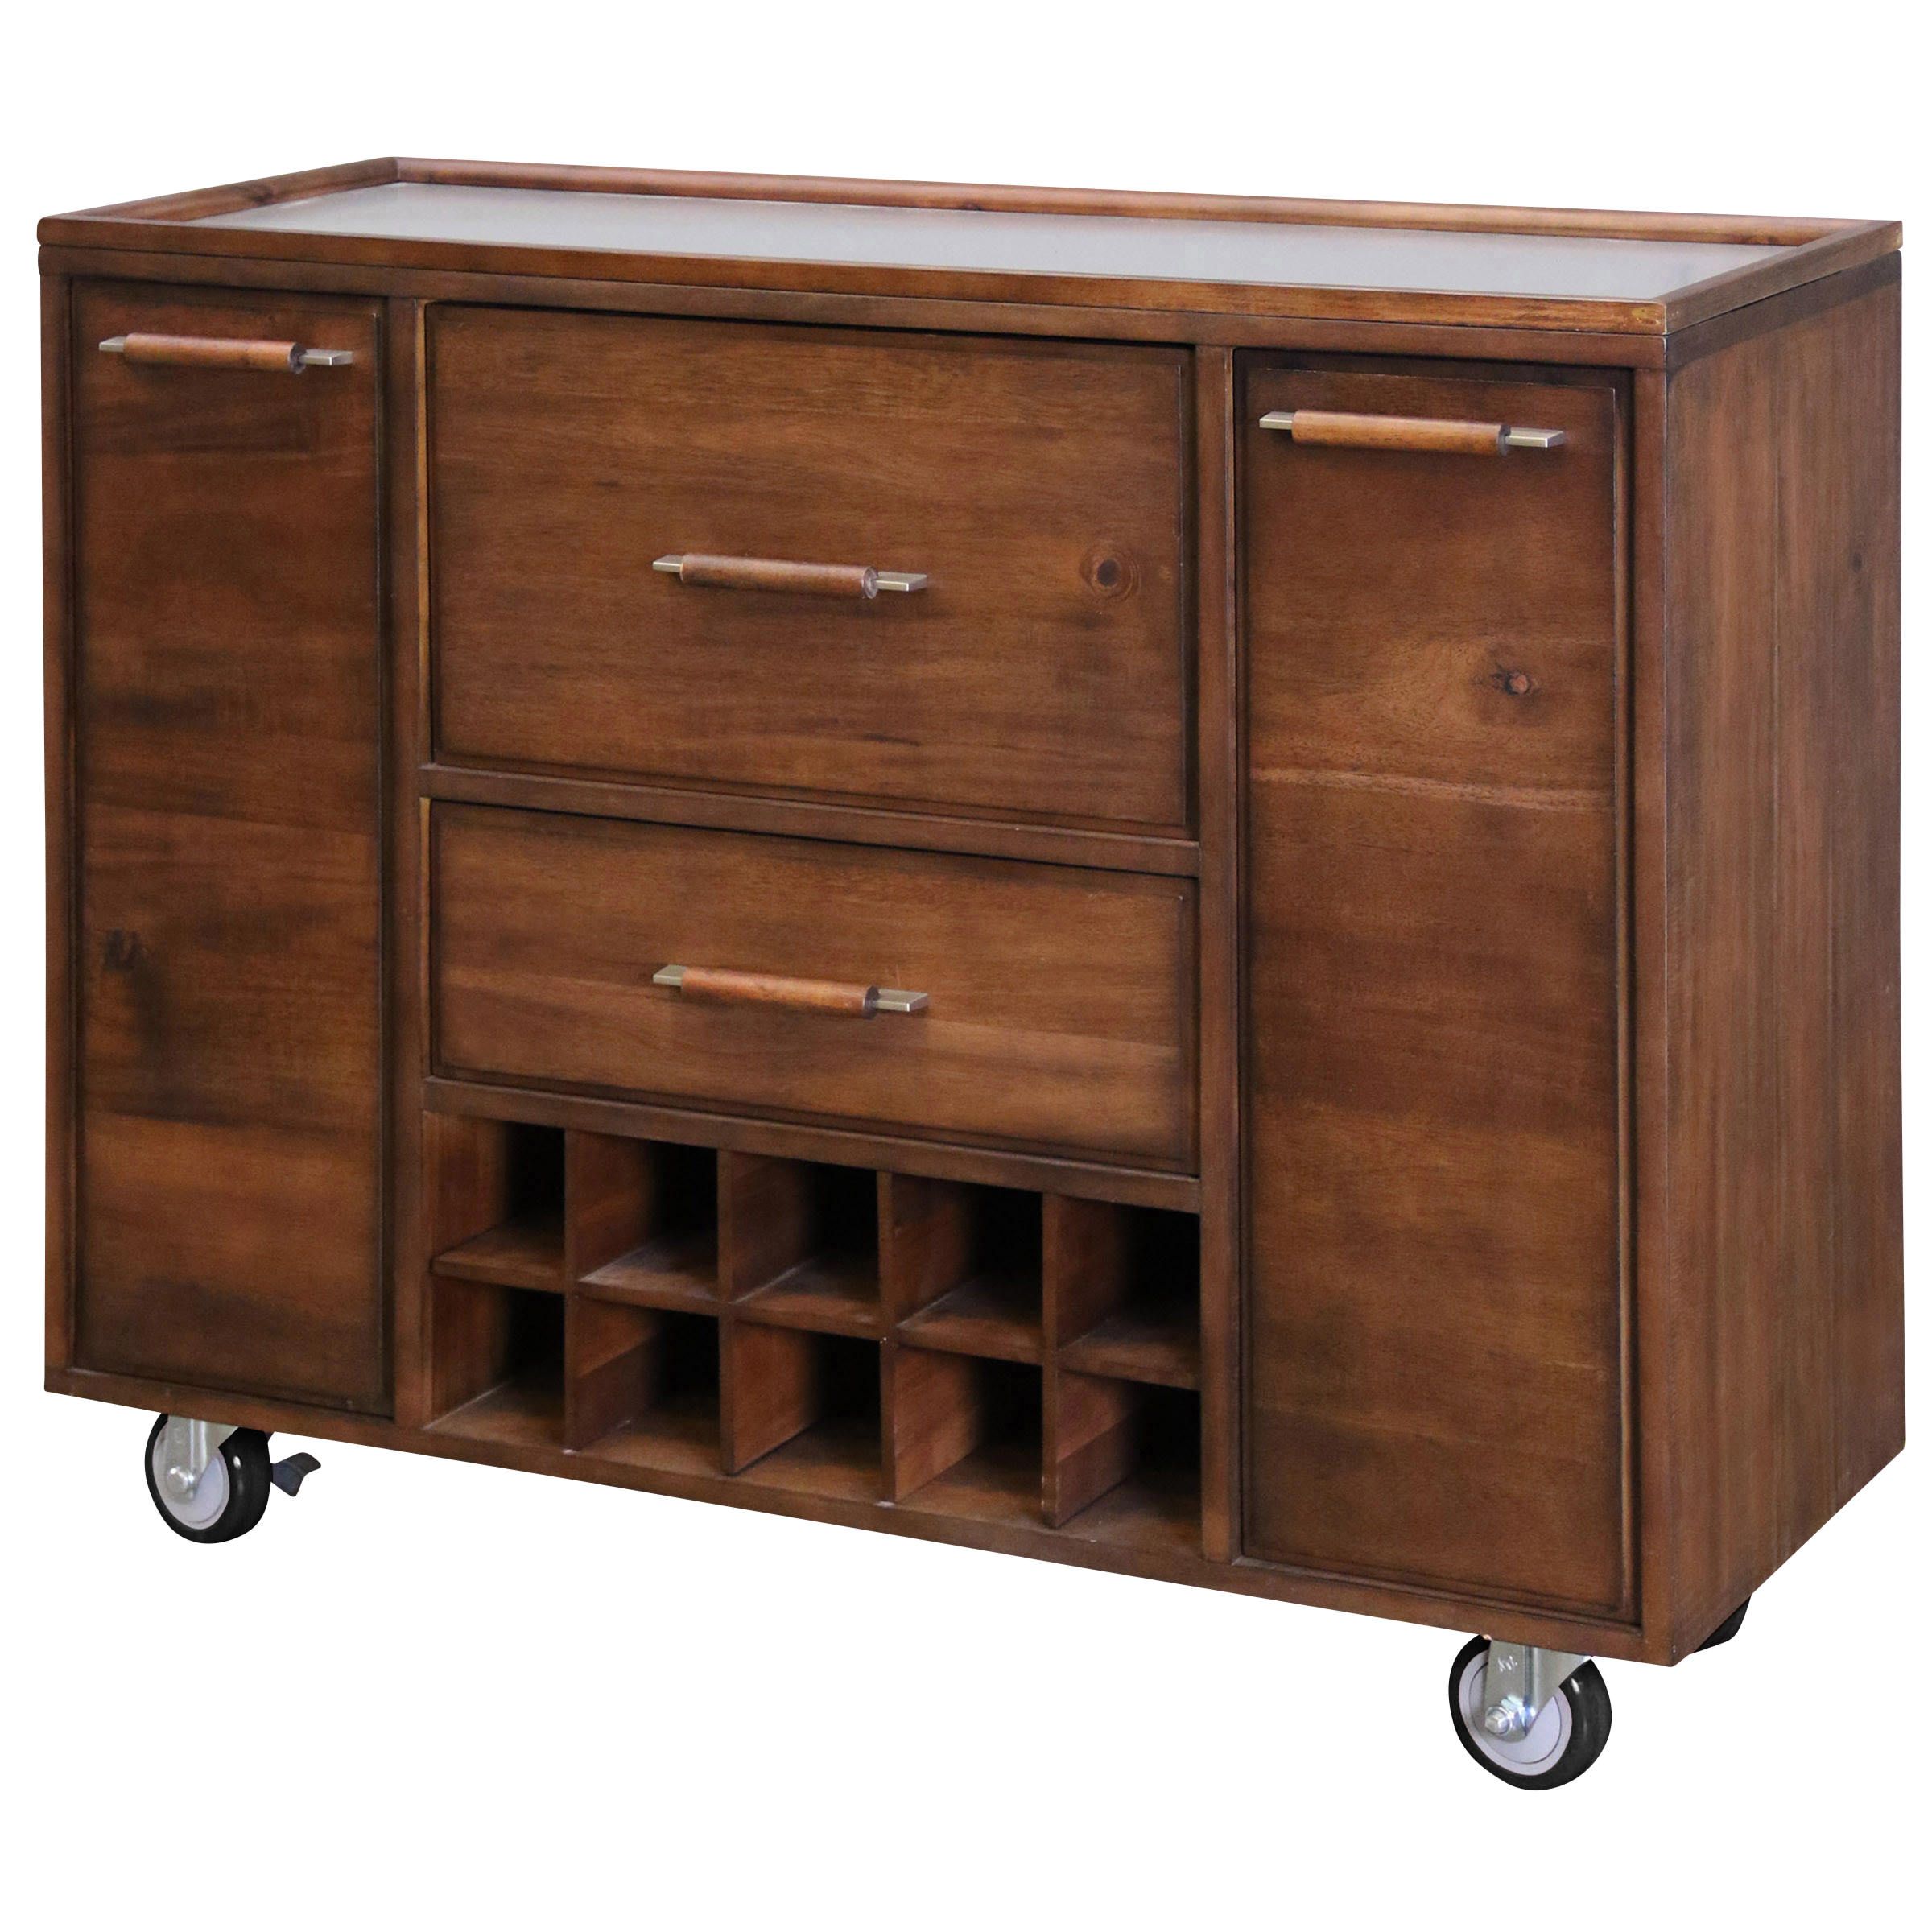 Metal Work Top Mobile Bar Trolley with Black Rubber Wheels - Natural Wood Finish